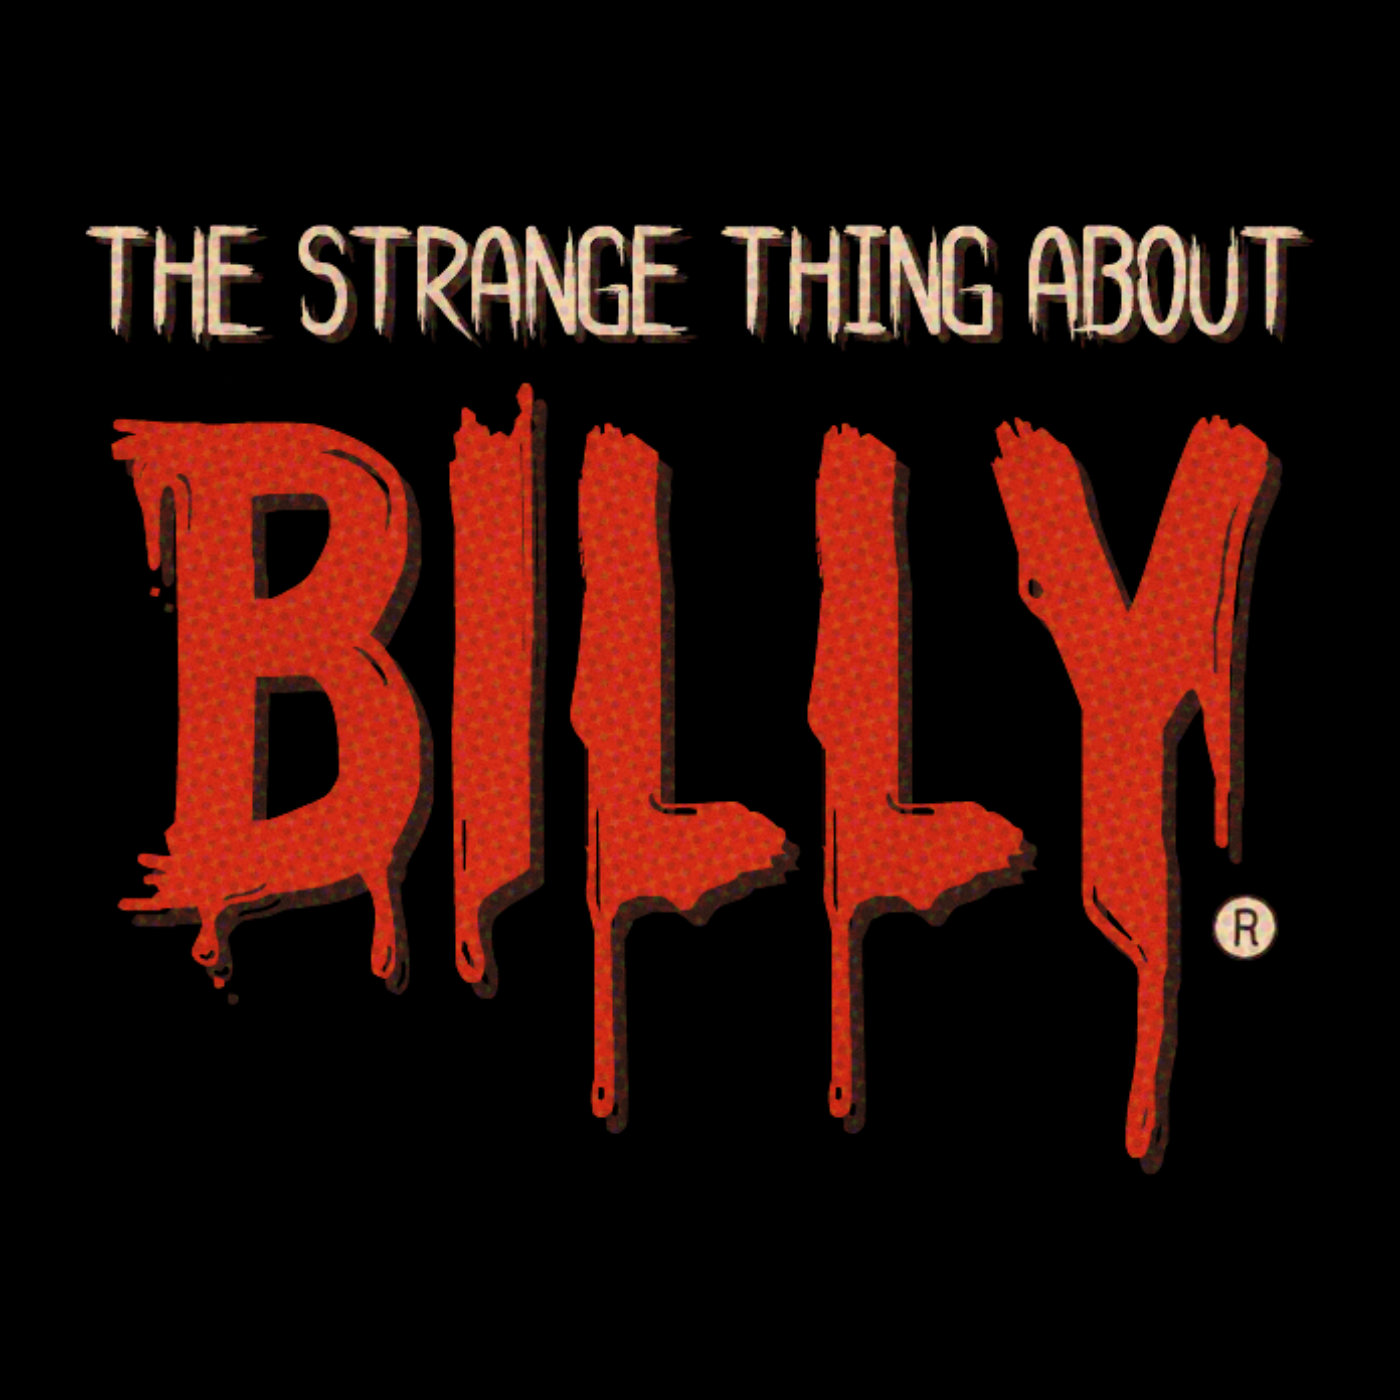 The Strange Thing About Billy (full episode)